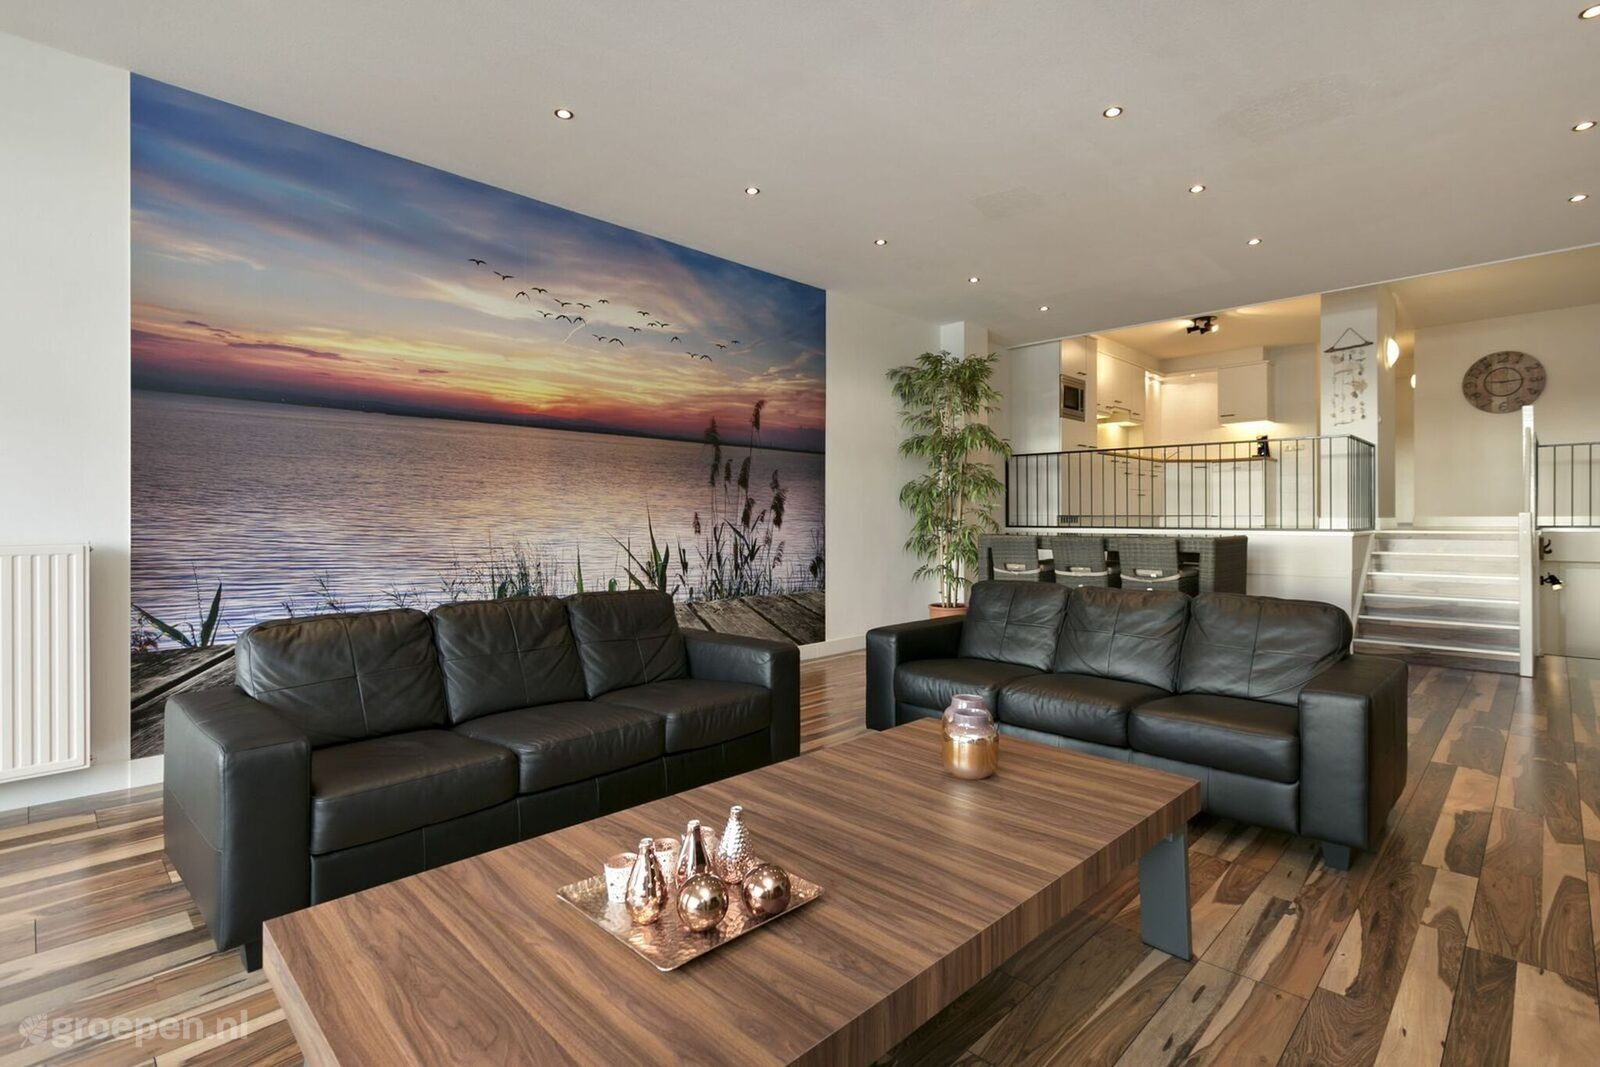 Holidayhouse in Ouddorp